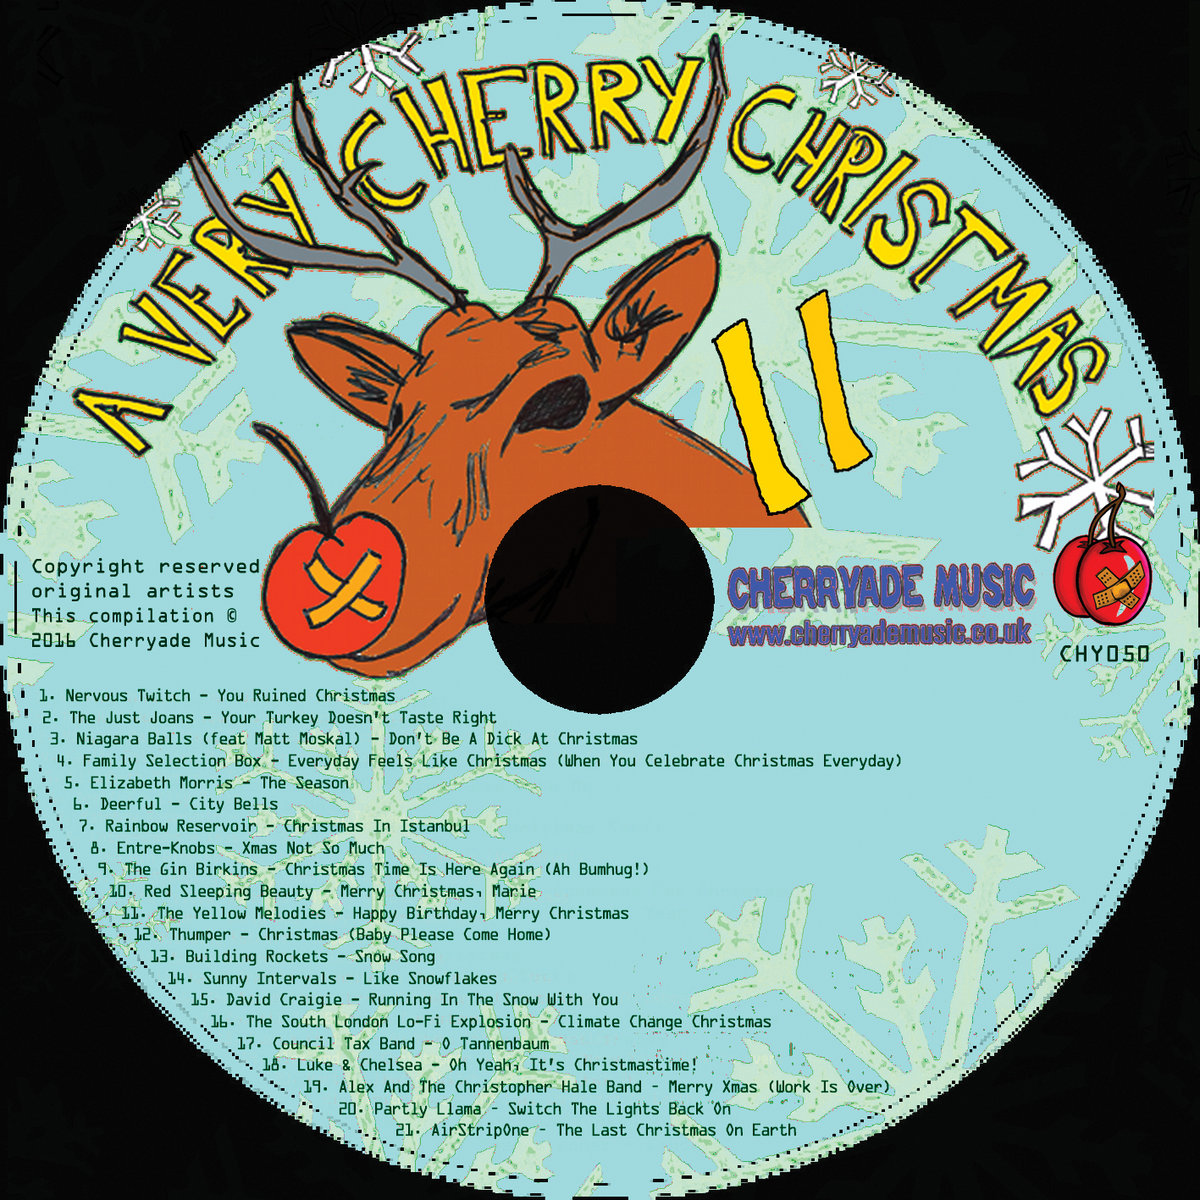 a very cherry christmas volume 11 limited edition cd of 200 copies